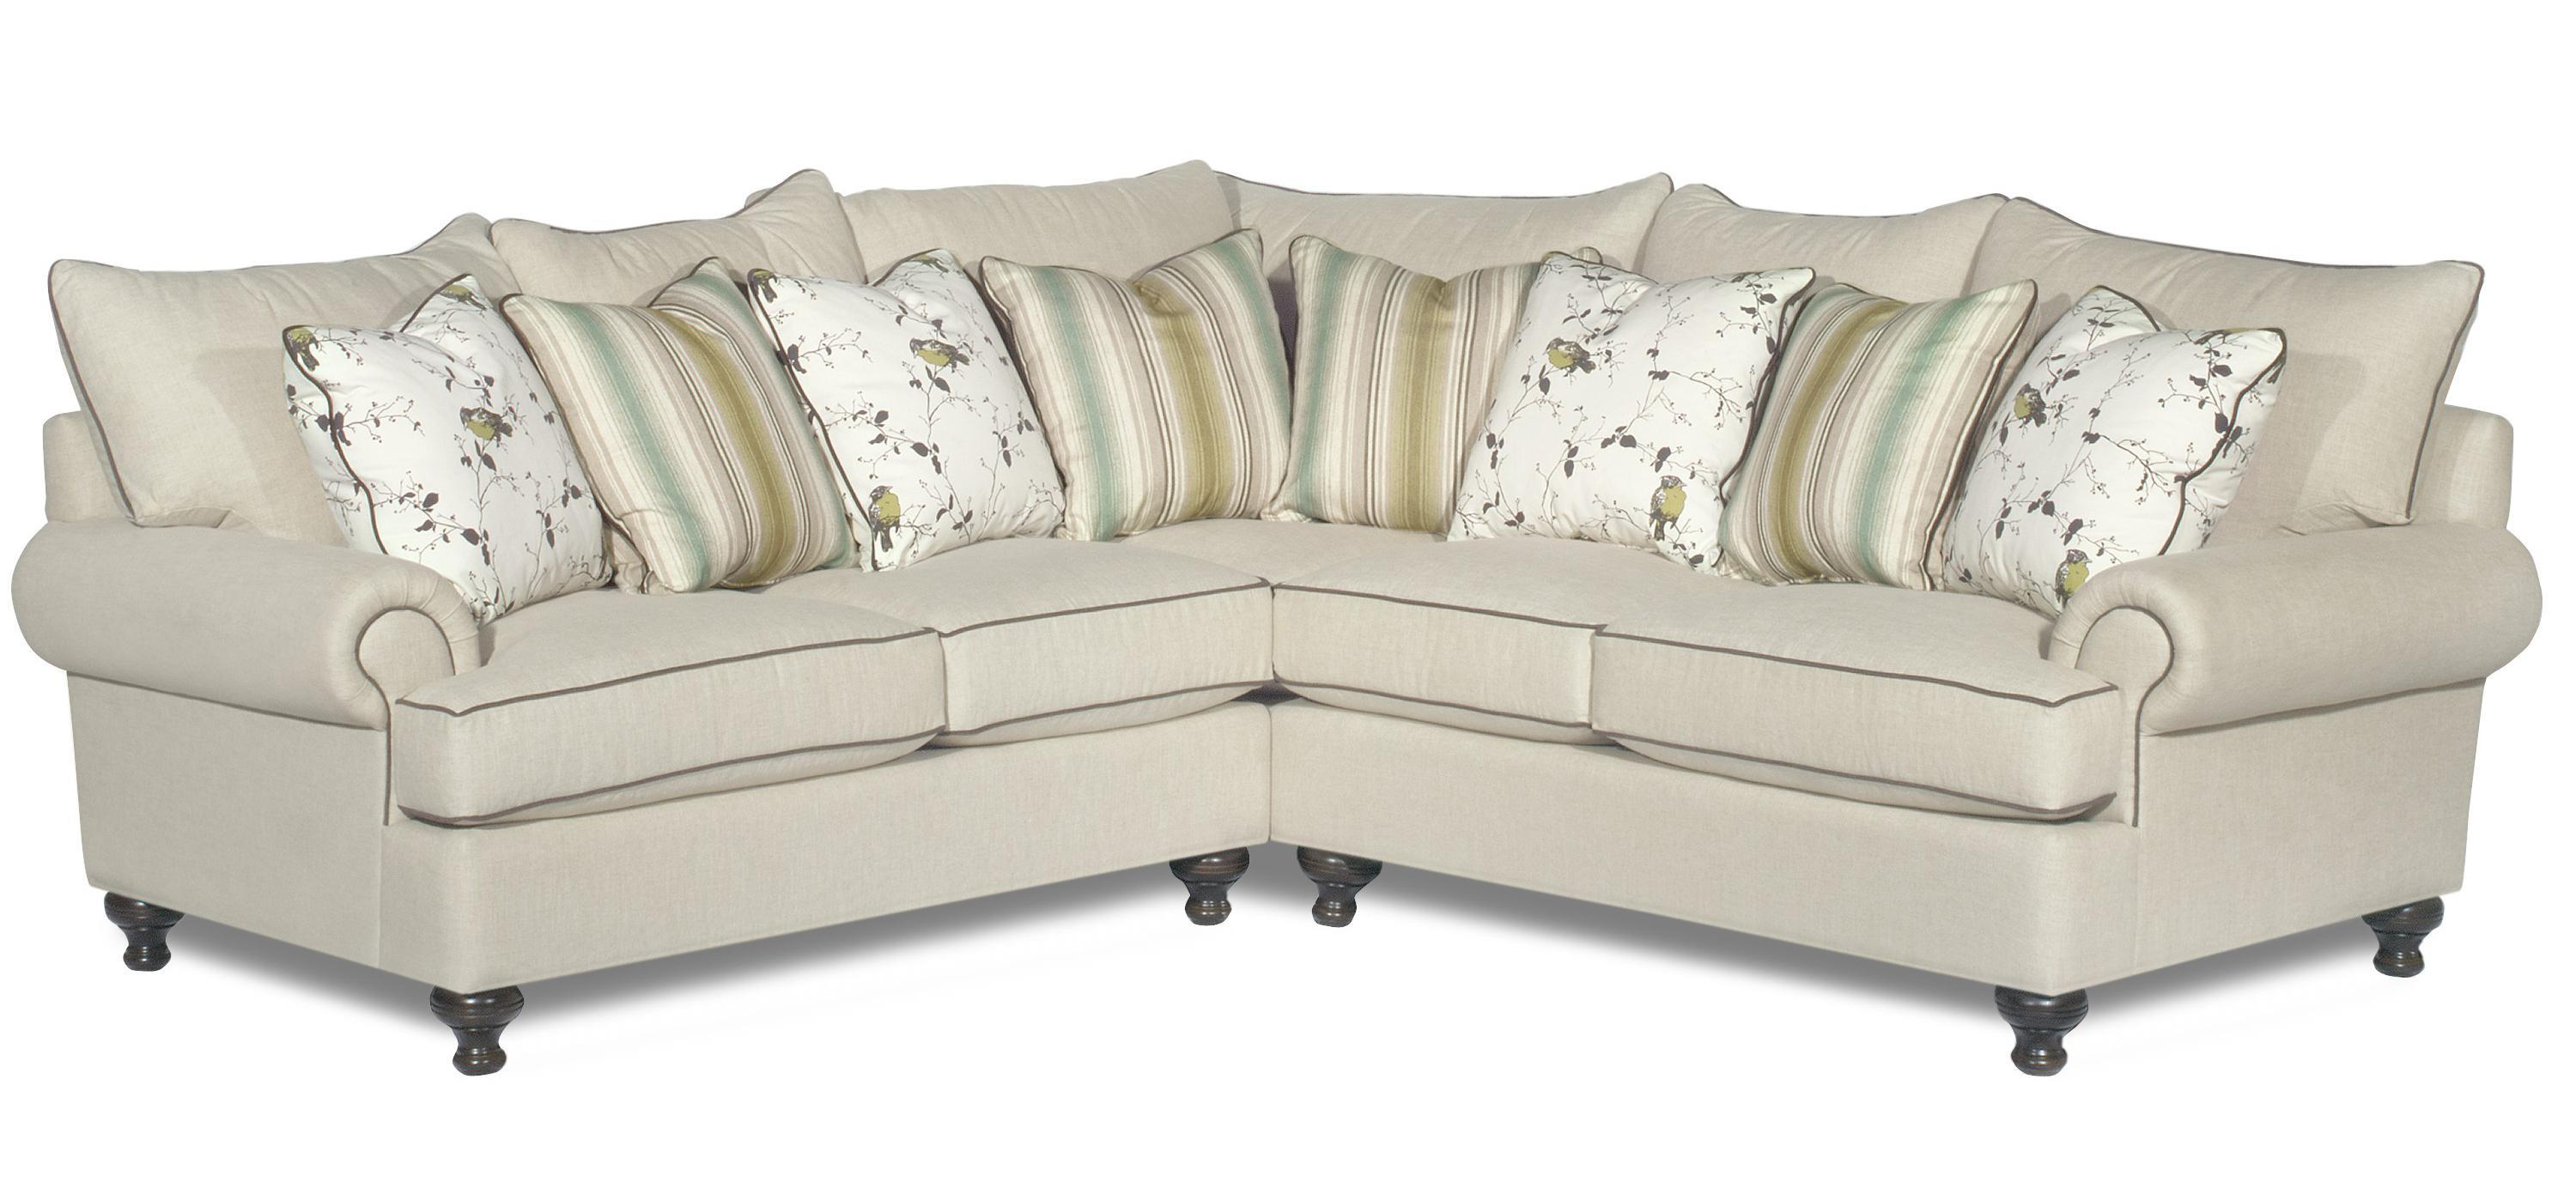 Paula Deen By Craftmaster P711700 2 Piece Sectional Sofa With Rolled Arms And Turned Feet Sprintz Furniture Sectional Sofas